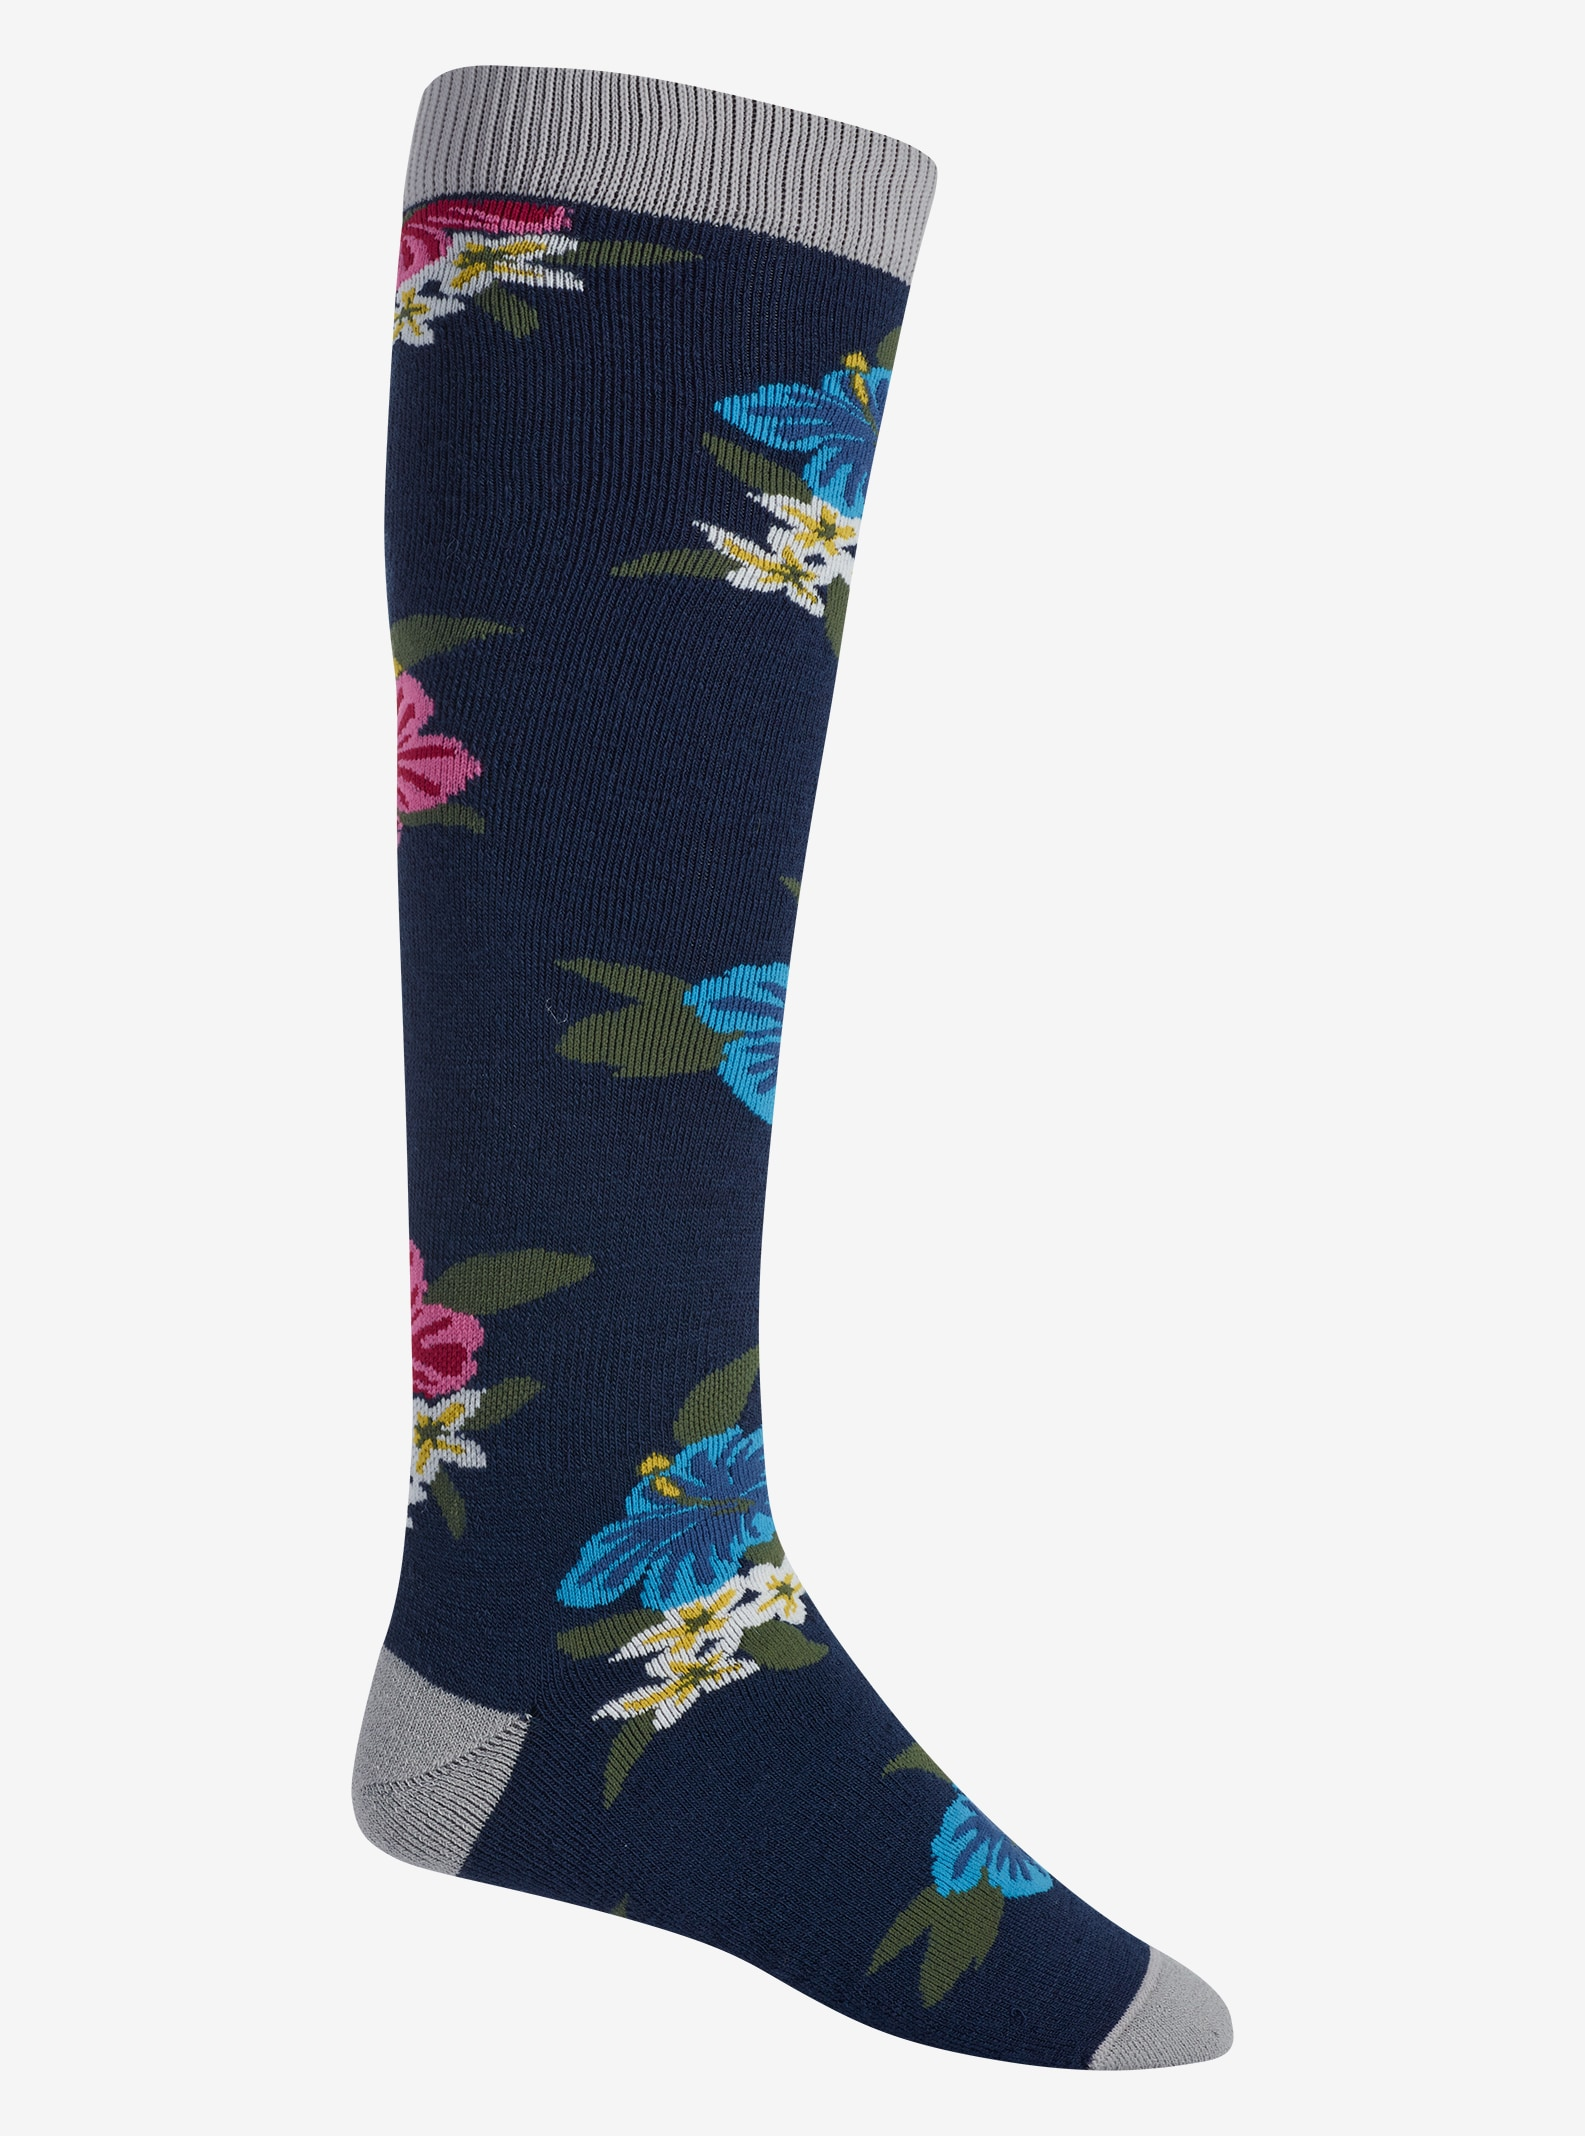 Men's Burton Party Sock shown in Hawaiian